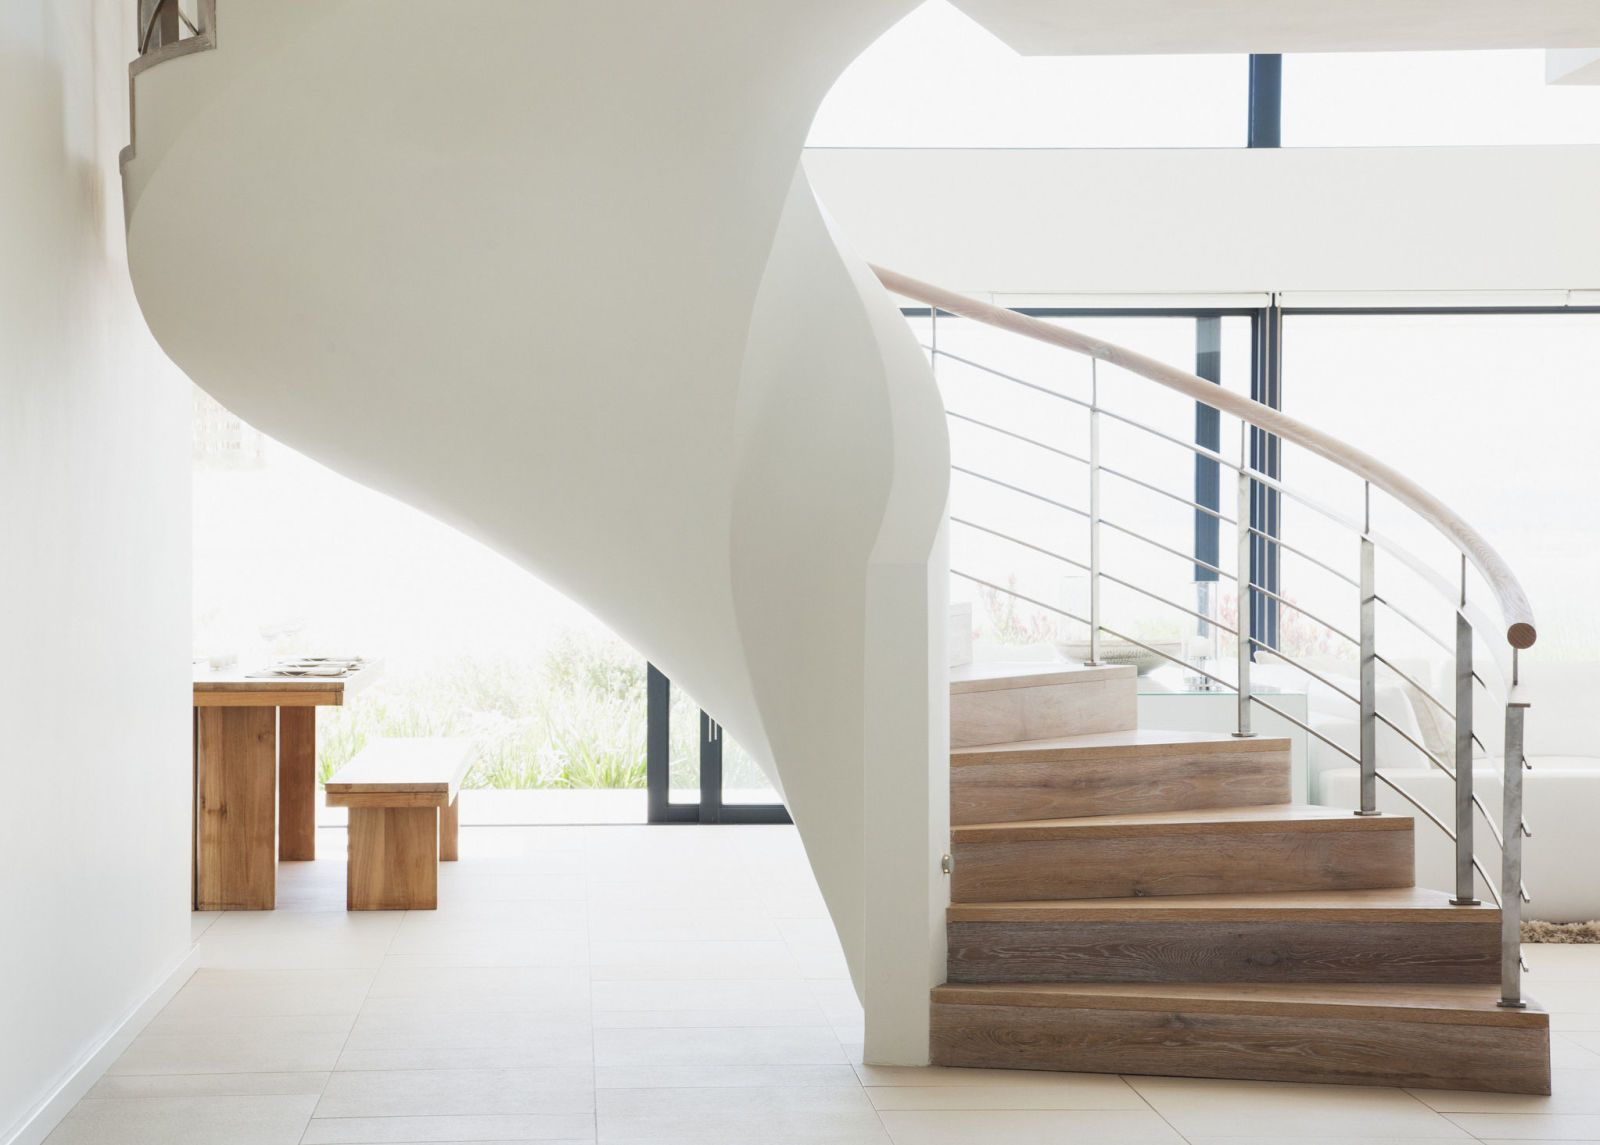 Curving Staircase In Modern Home. Getty ImagesMartin Barraud